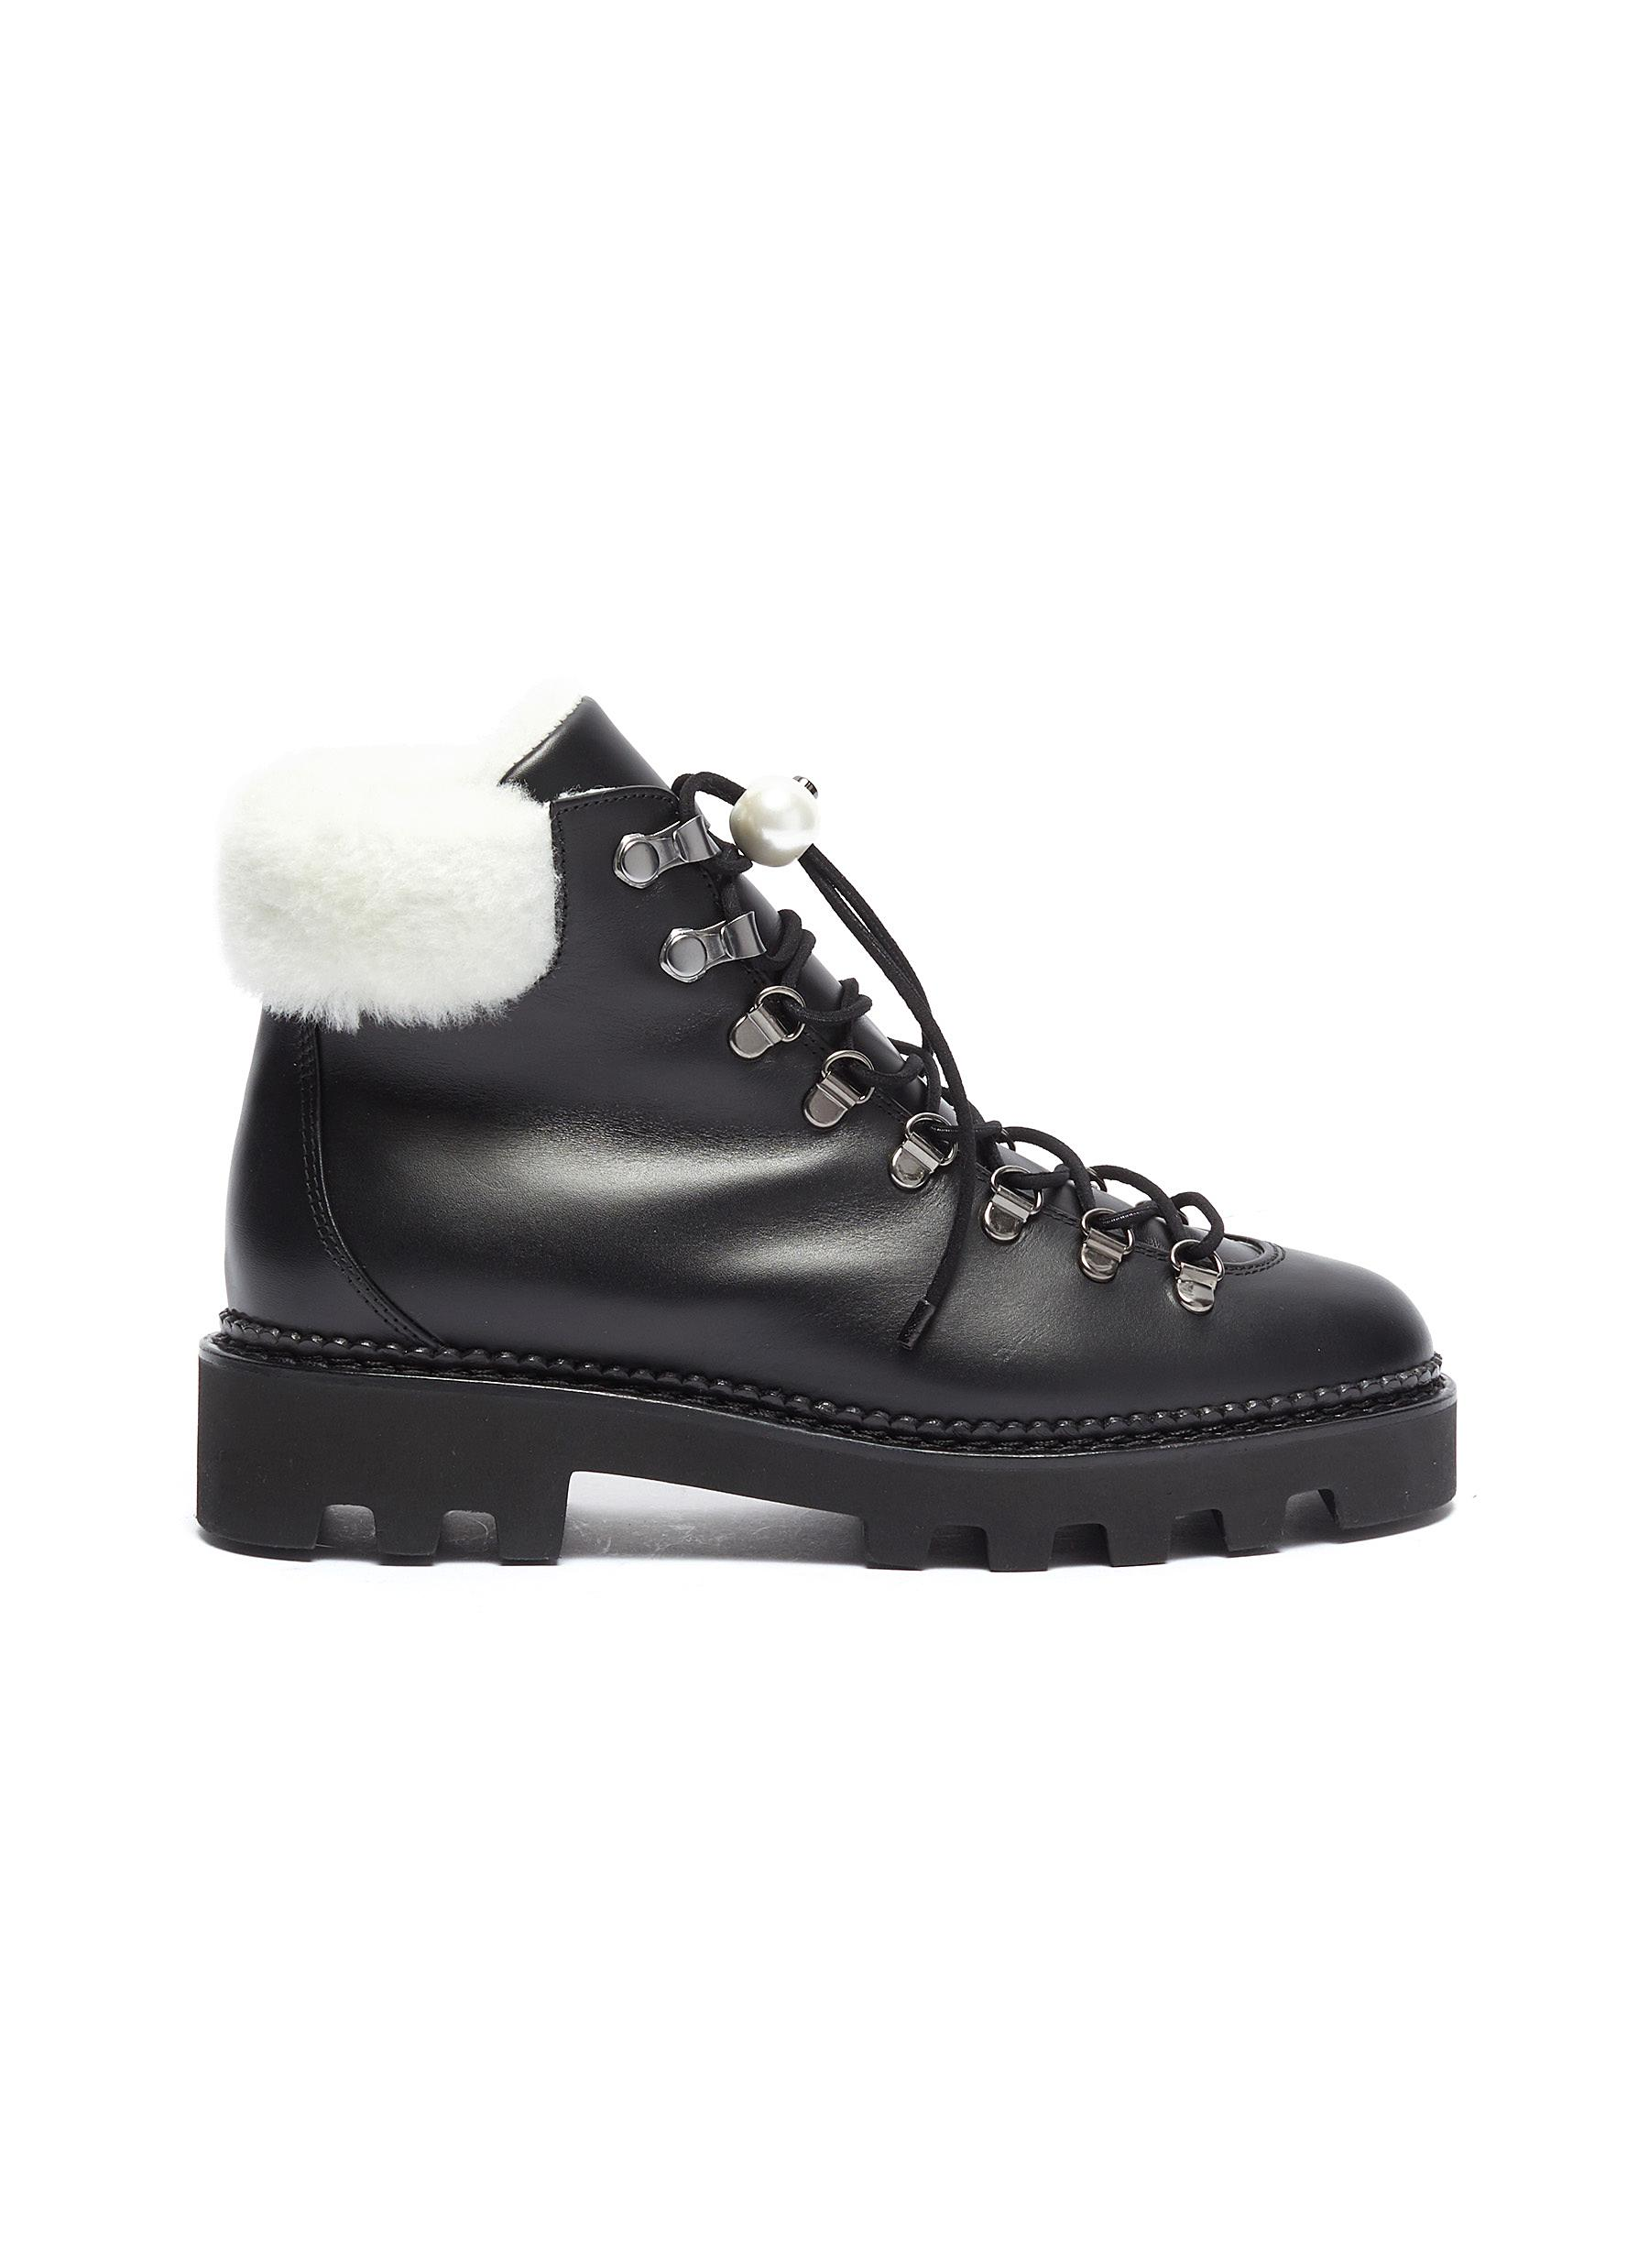 Delfi shearling collar leather hiking boots by Nicholas Kirkwood